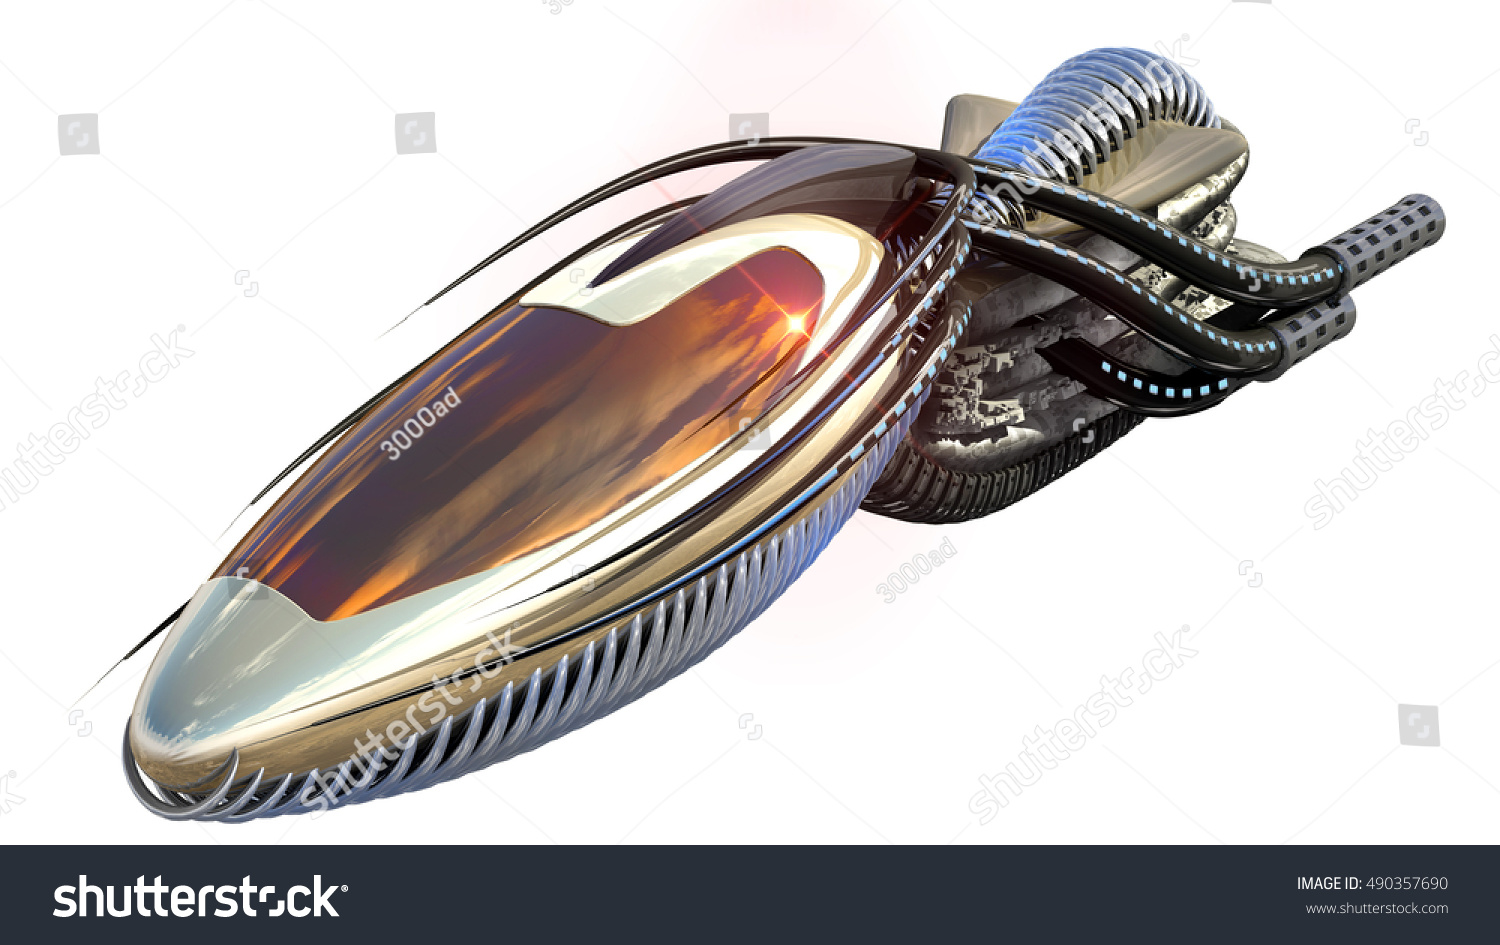 3D Illustration Of Organic Drone Design Or Alien Spacecraft For Science Fiction Themes Fantasy War